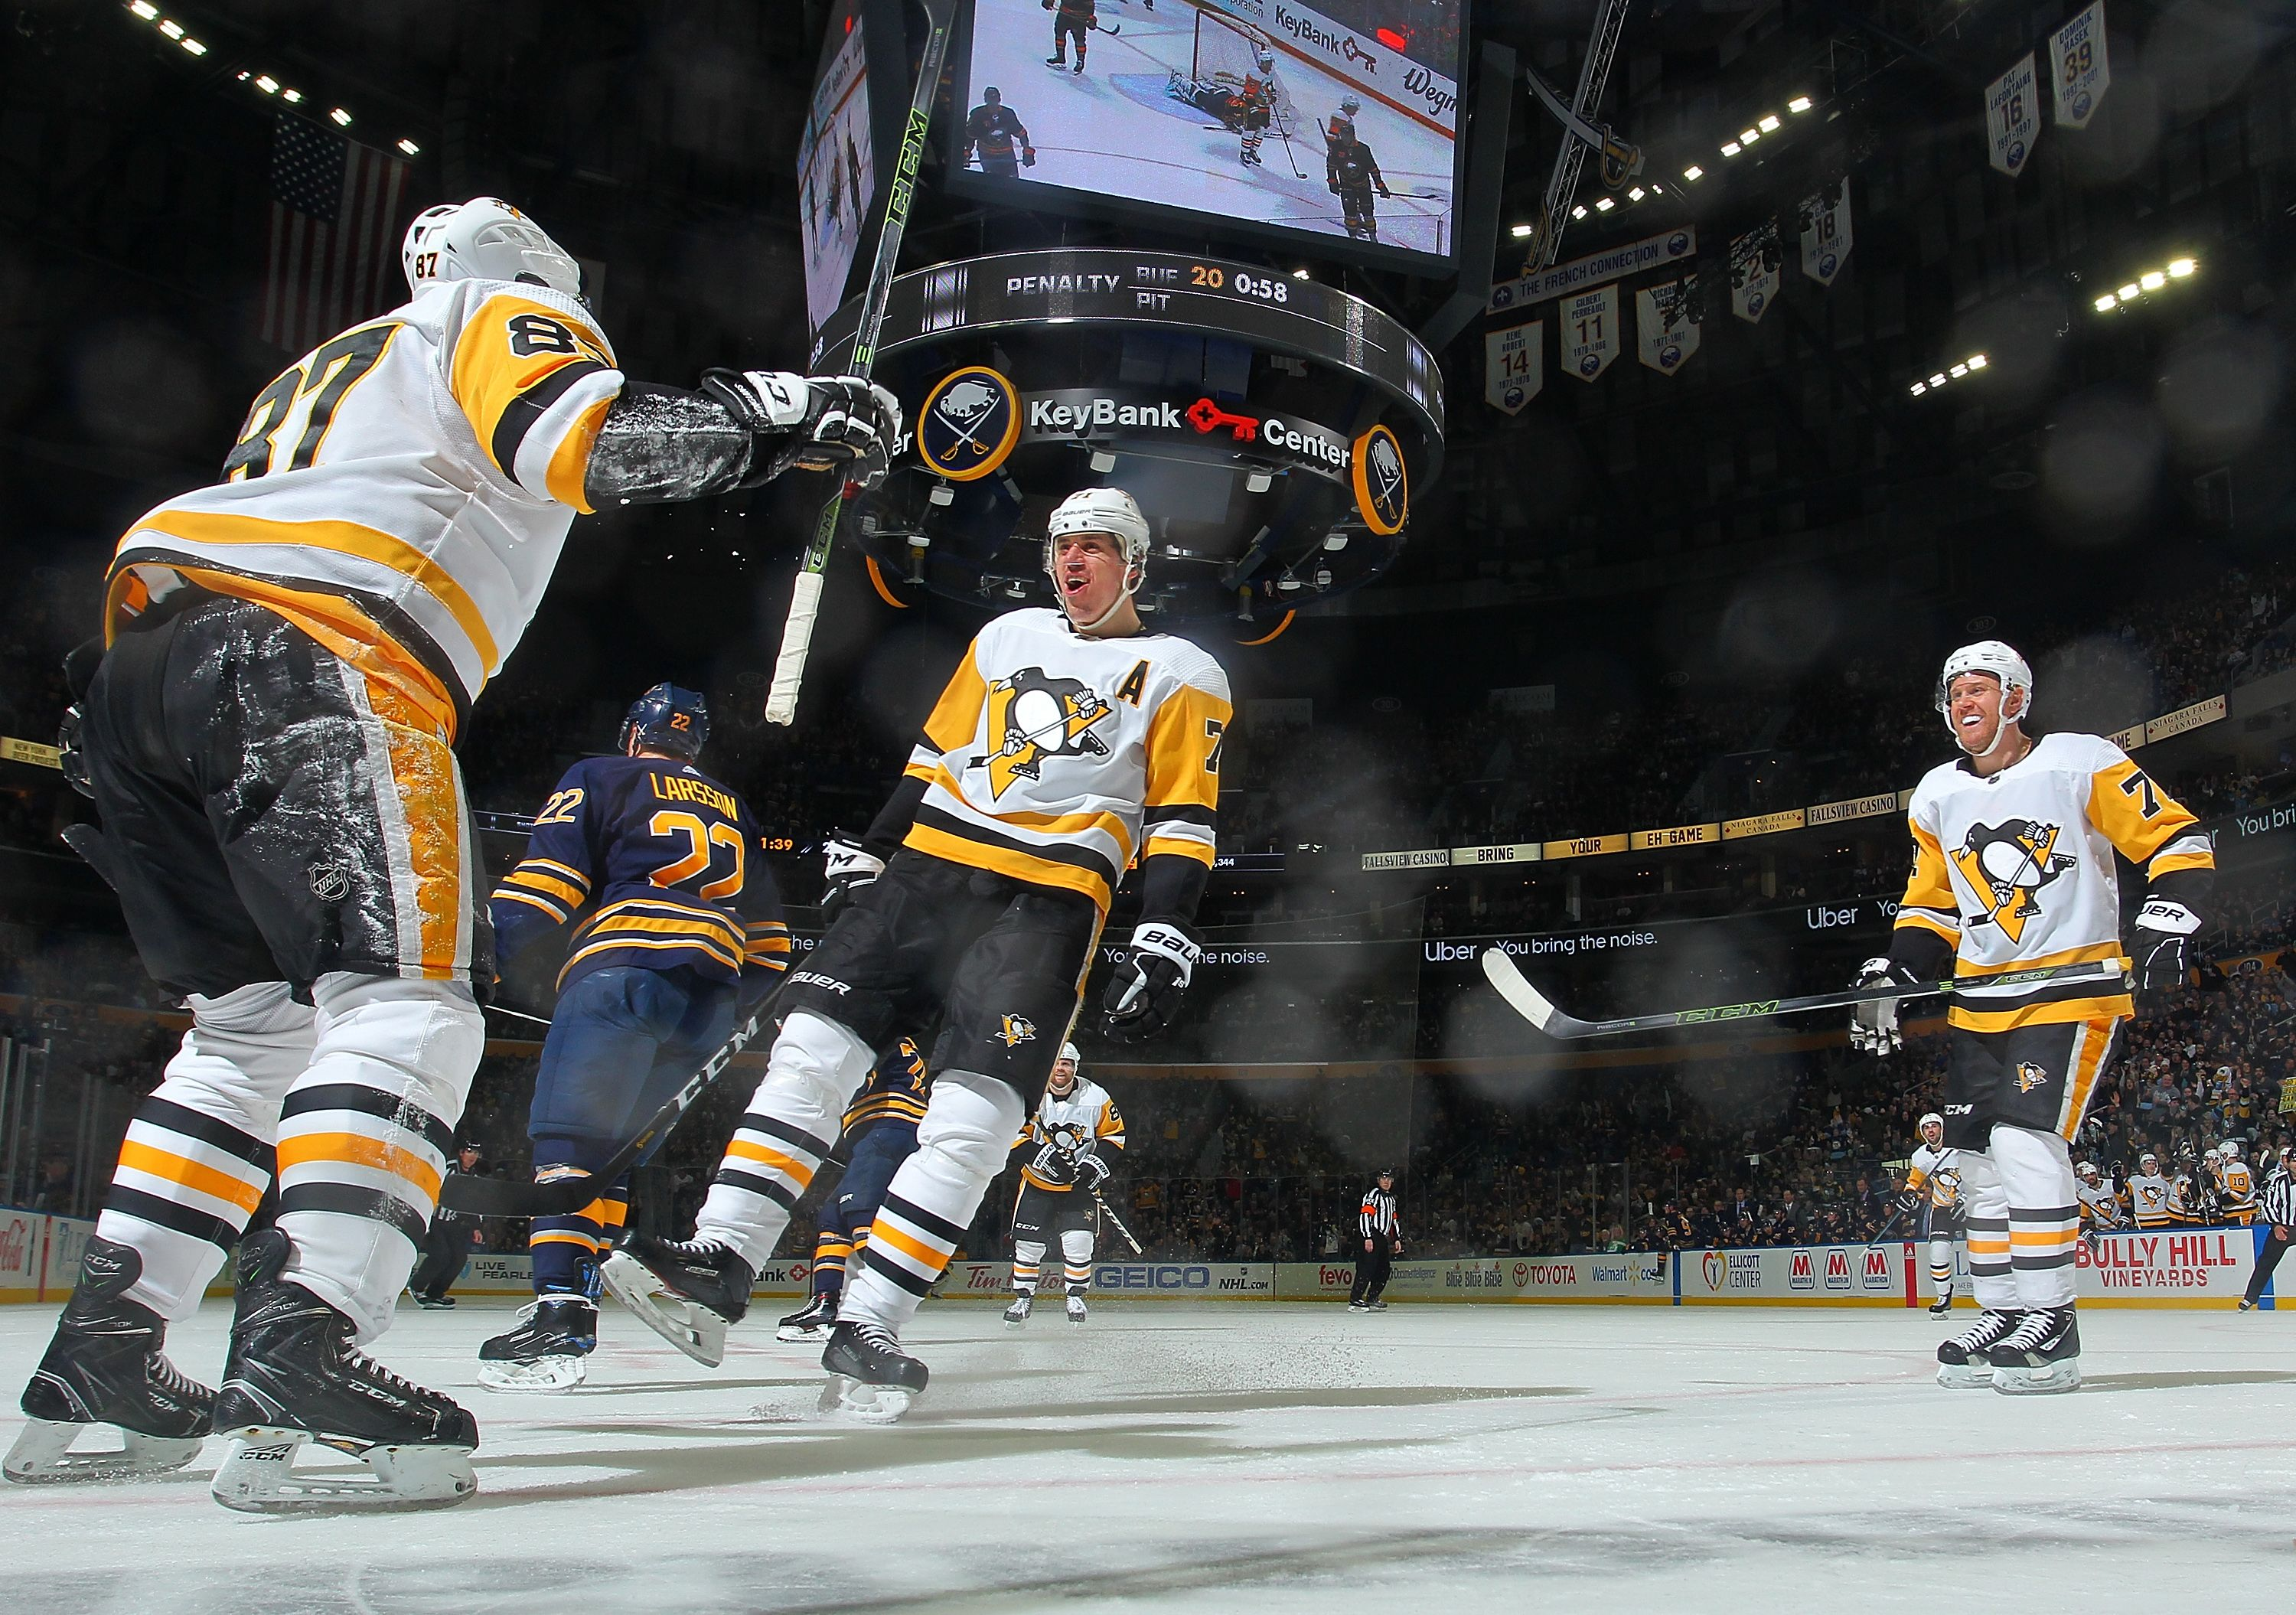 March 1 2019 At Buffalo Sidney Crosby Finished With Two Points 1g 1a To Bring Him Within One Point Shy Of 80 Pittsburgh Penguins Lets Go Pens Evgeni Malkin